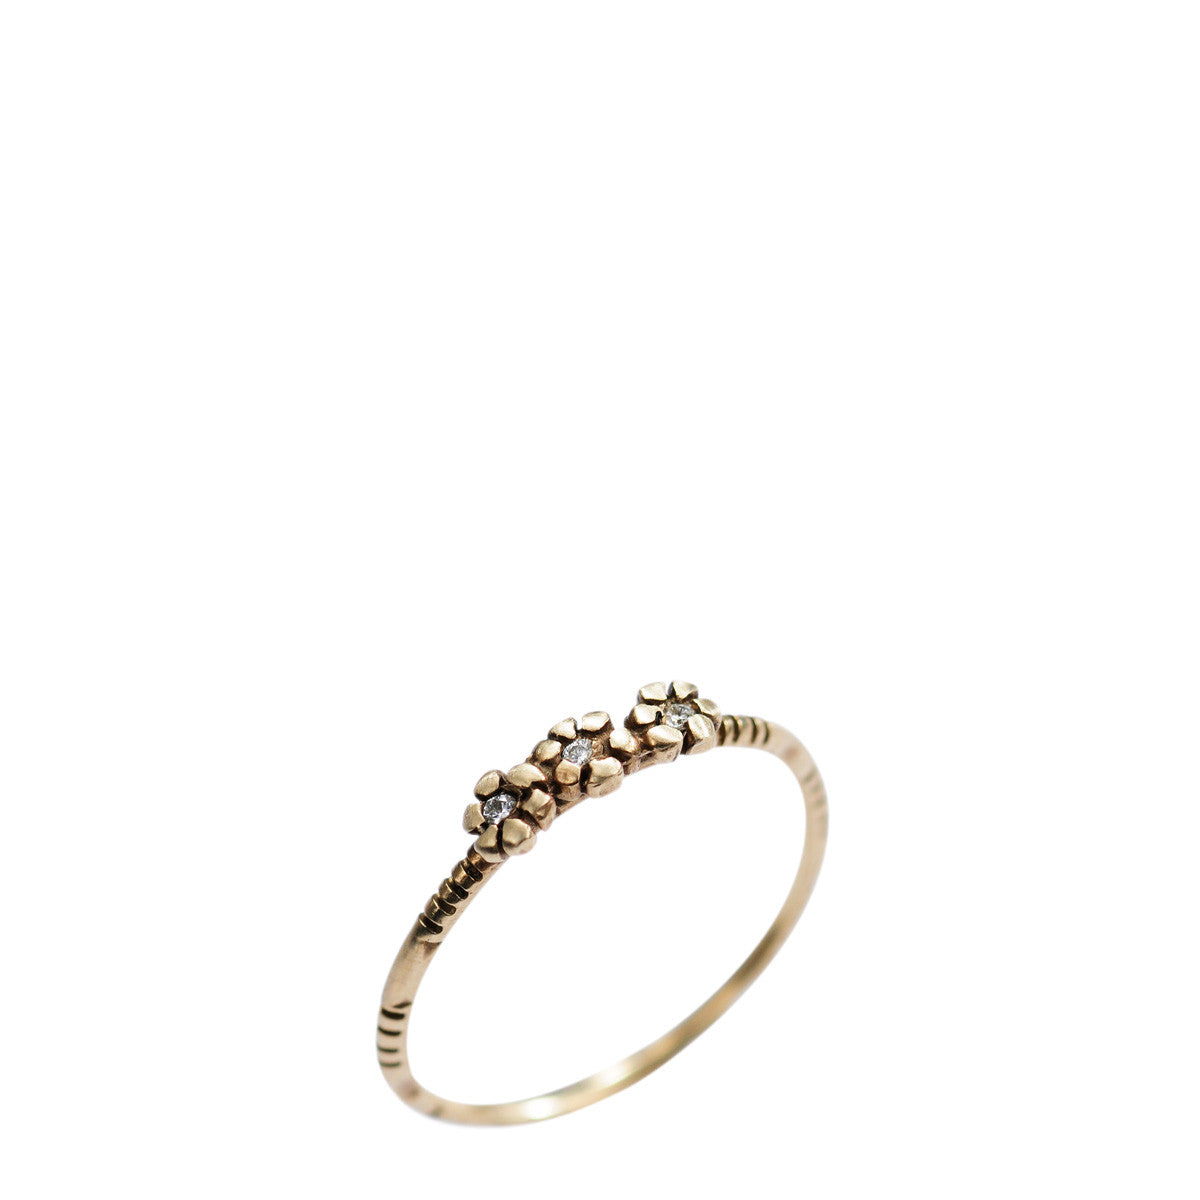 10K Gold Triple Tiny Flower Ring with Diamonds